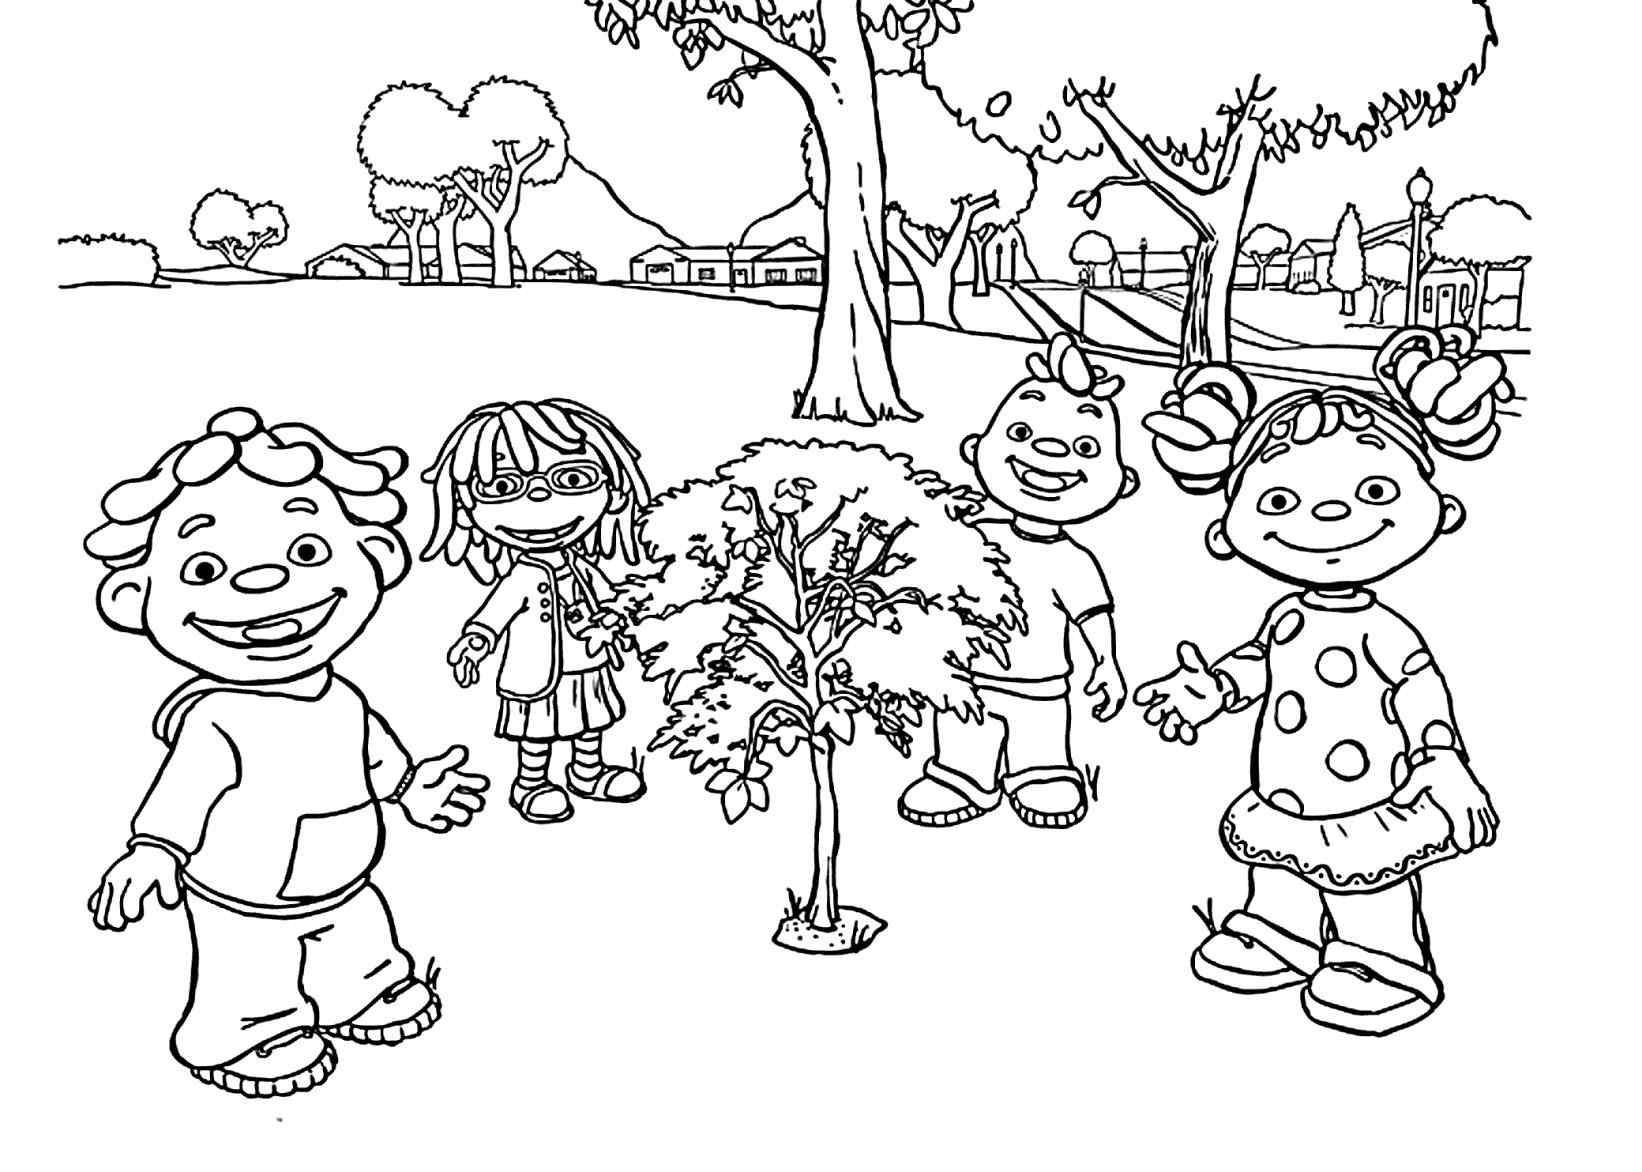 Science Lab Equipment Coloring Pages At Getcolorings